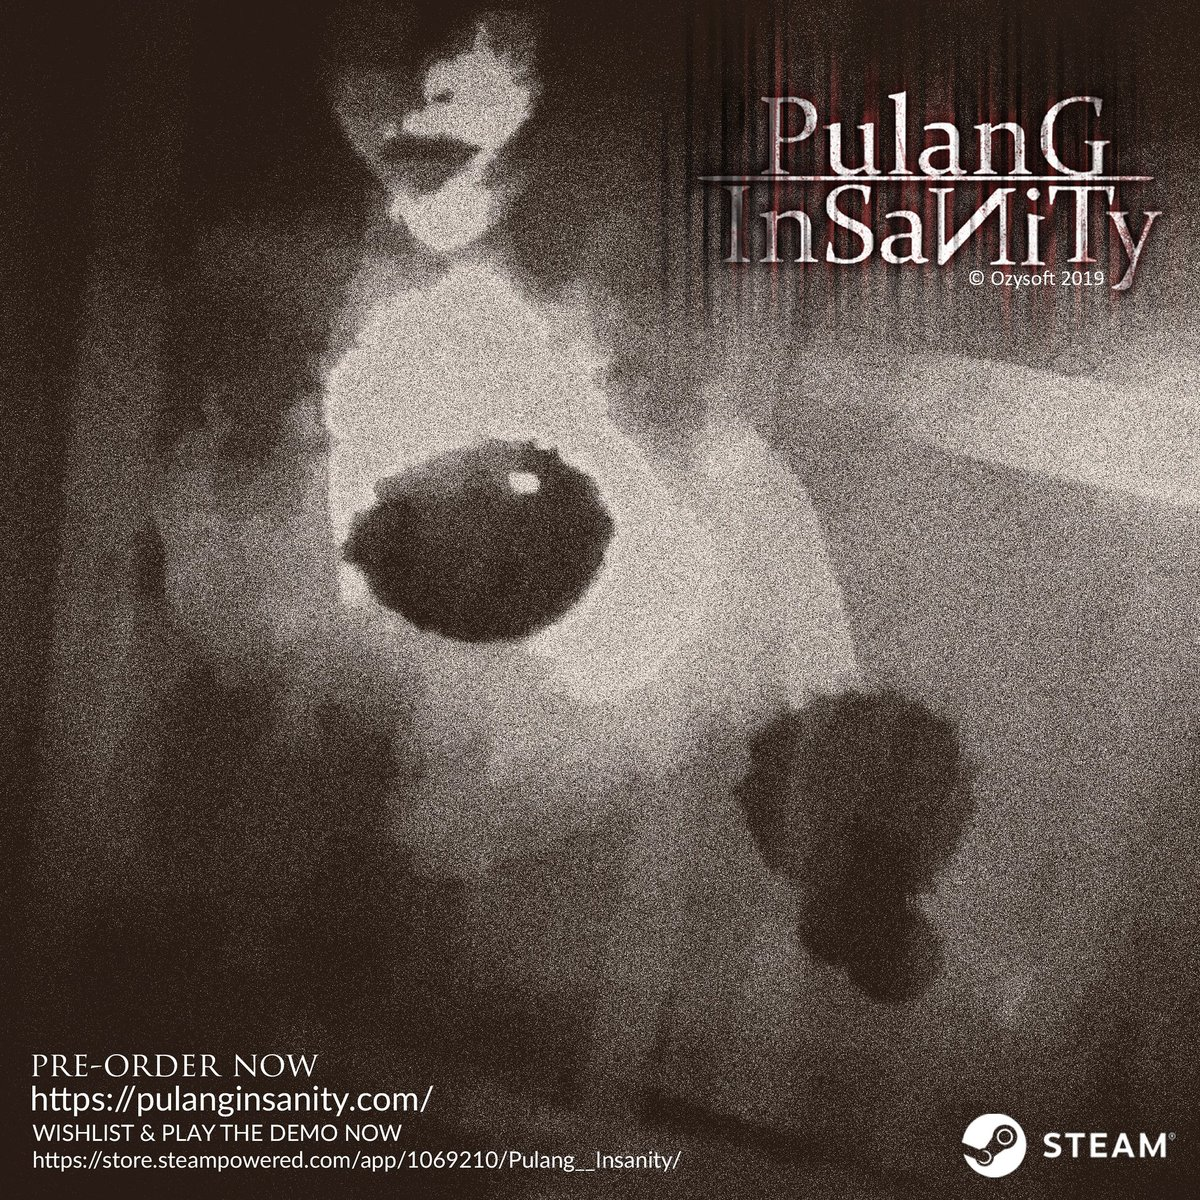 WISHLIST & PLAY THE DEMO NOW https://store.steampowered.com/app/1069210/Pulang__Insanity/ …  Website : http://pulanginsanity.com/   #EnterInsanity #ComingSoon #Games #Steam #Indonesia #horror #SurvivalHorror #PsychologicalHorror #pulanginsanity #NewDemoUpdatepic.twitter.com/g6U0AAg3T9